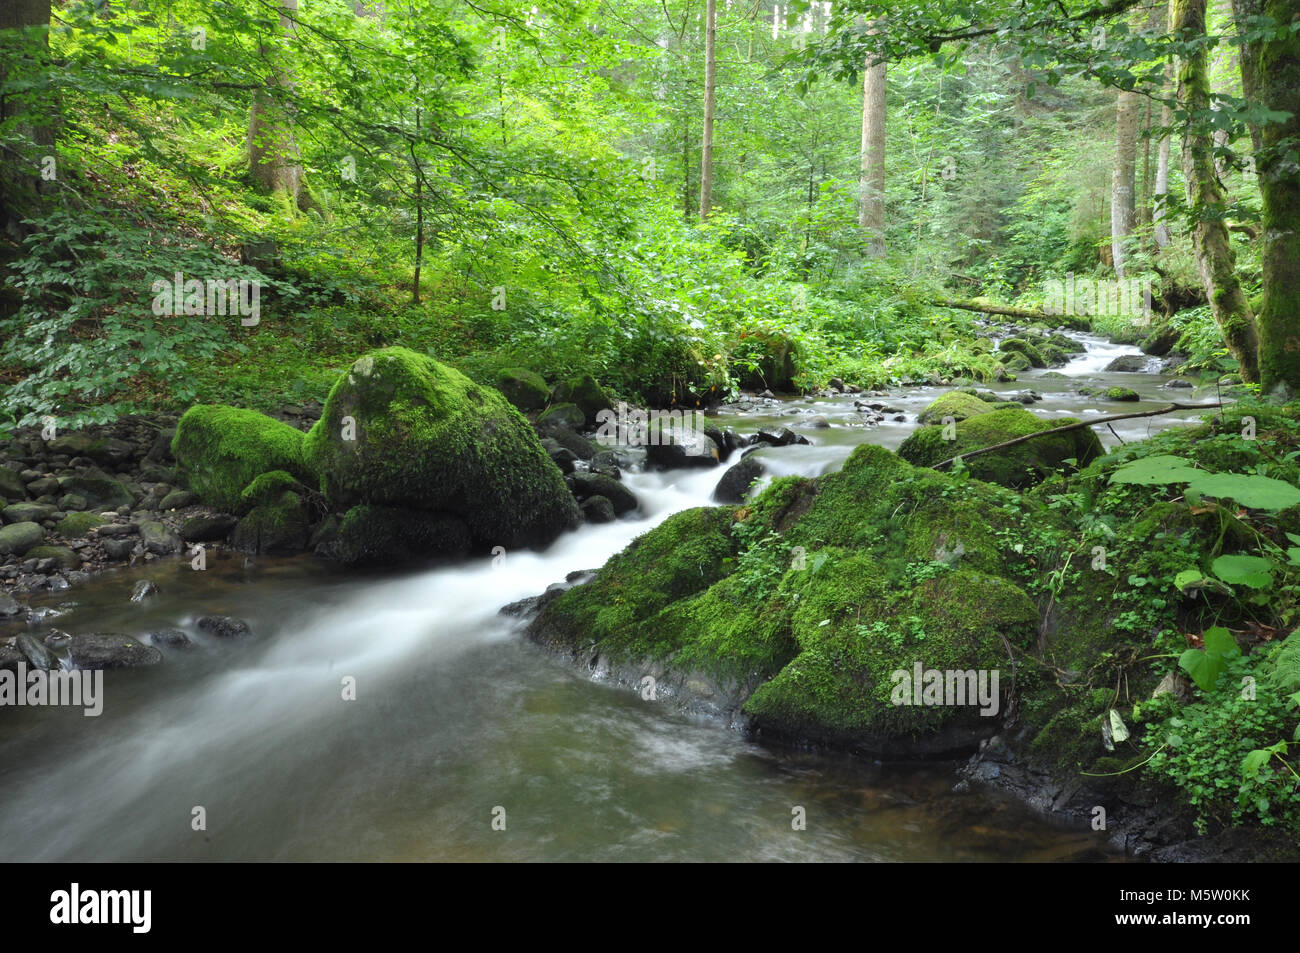 Beautiful streams and forests of the Black Forest, Germany - Stock Image